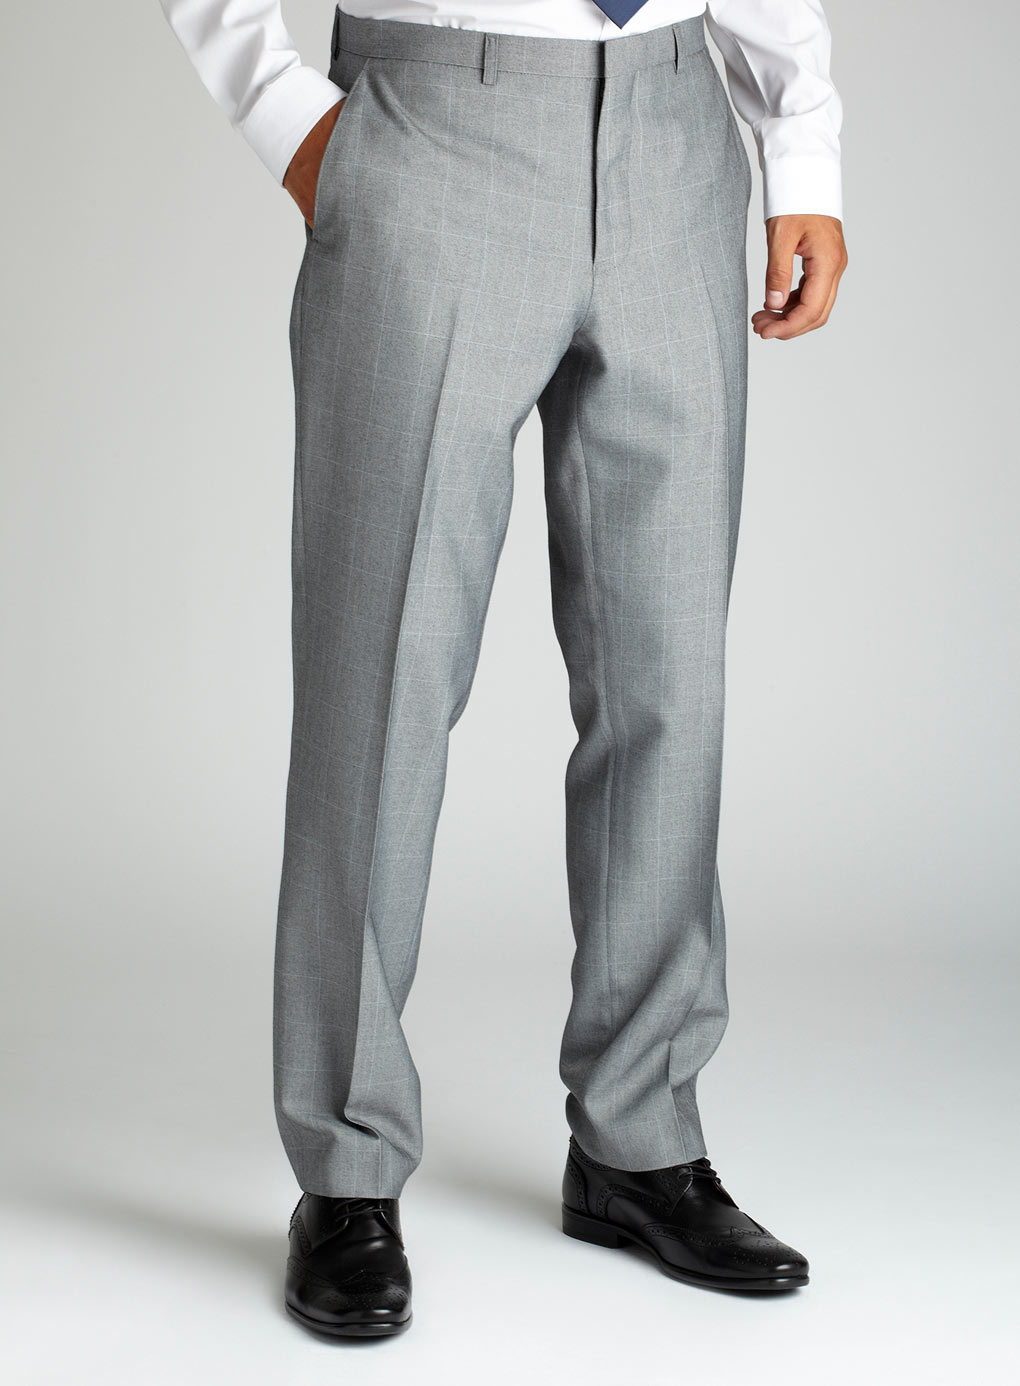 Find great deals on eBay for mens suit pants. Shop with confidence.